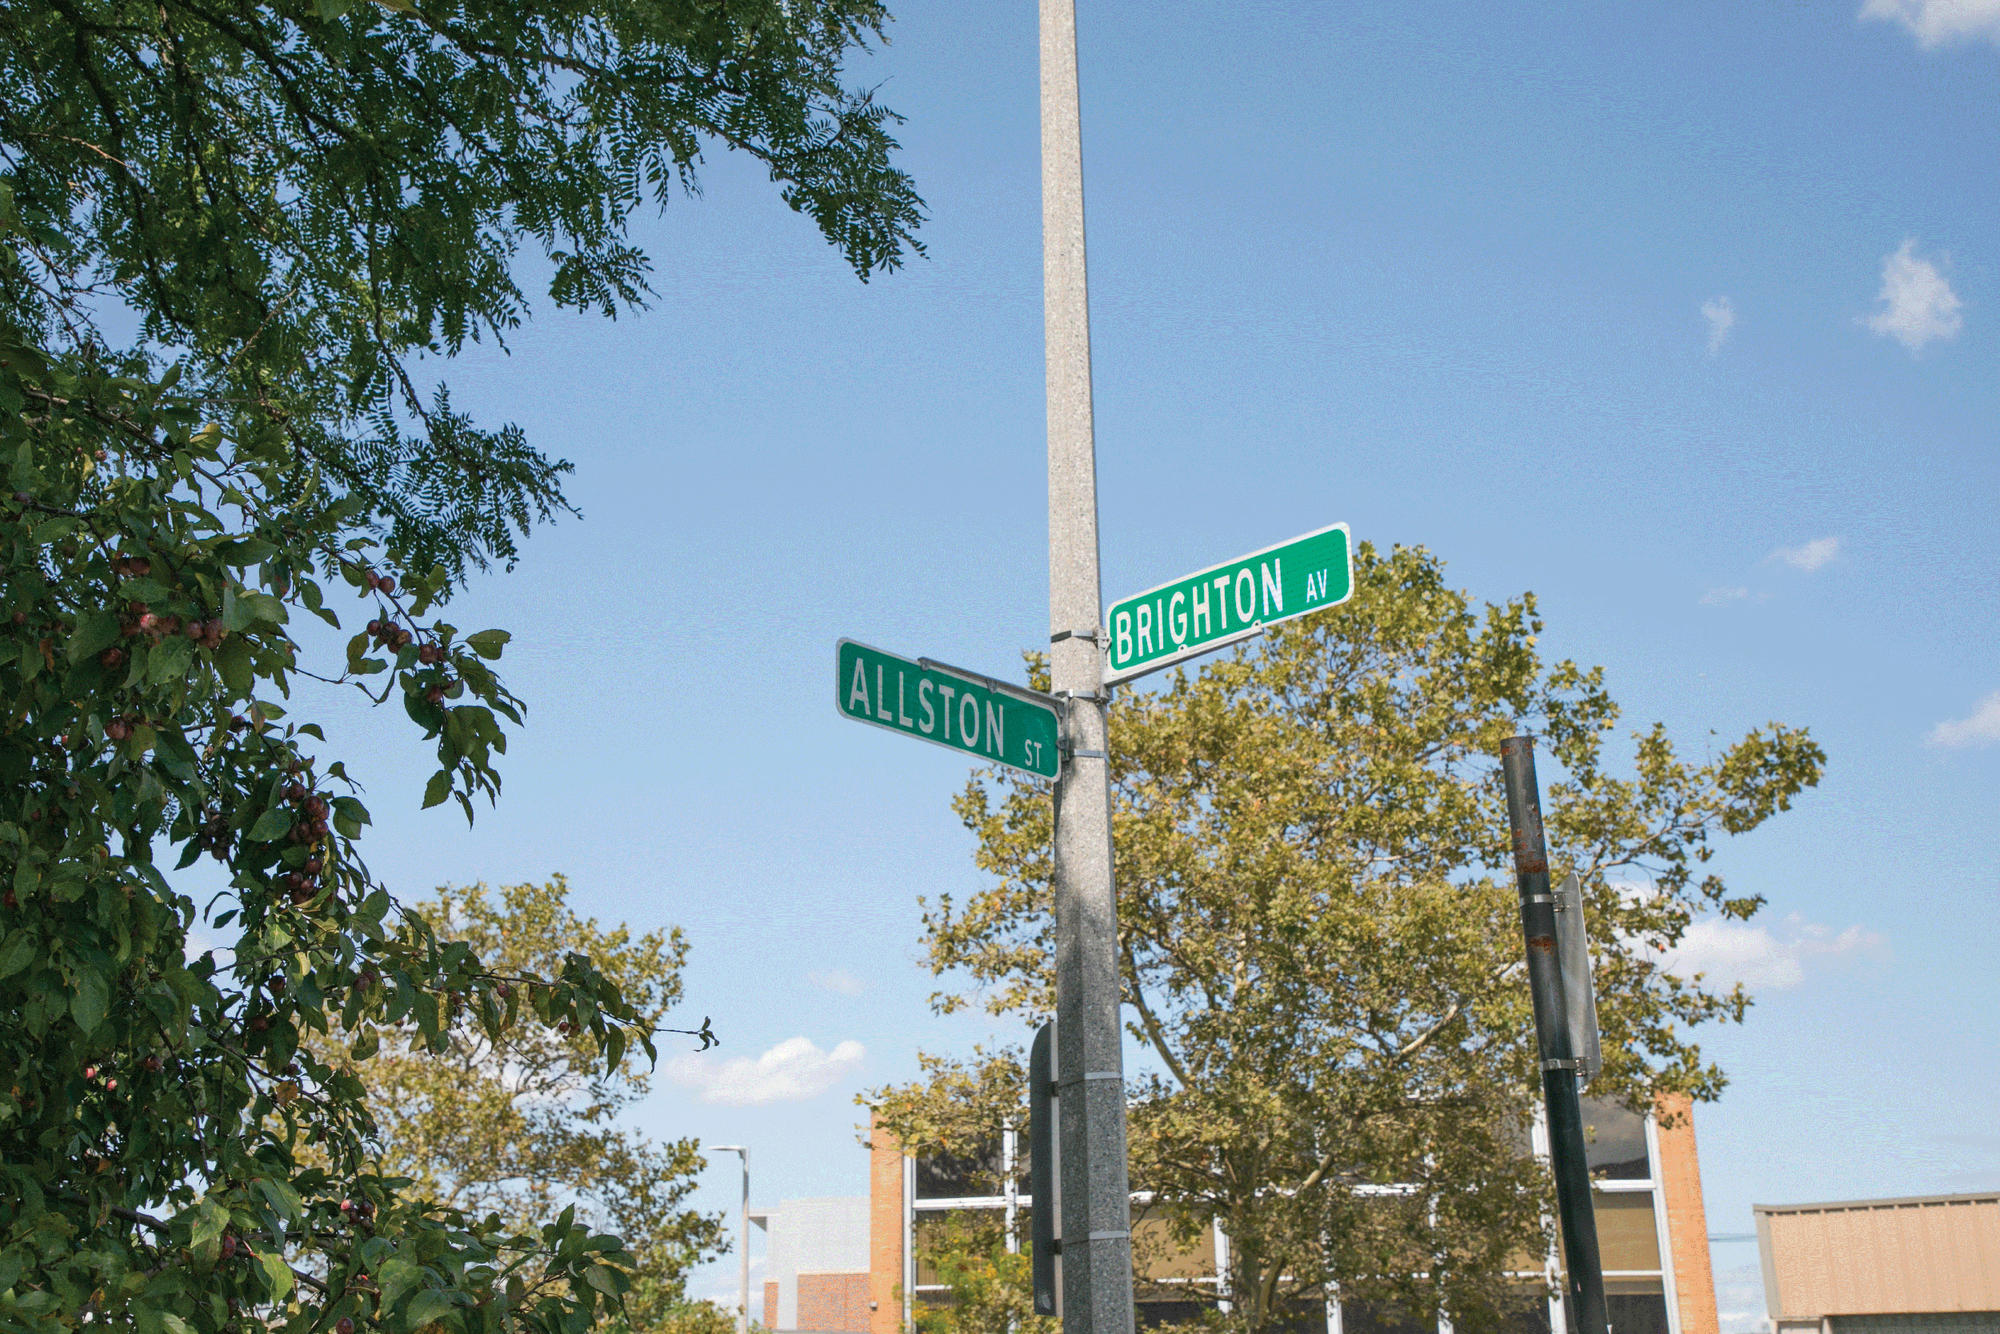 Allston-Brighton street sign